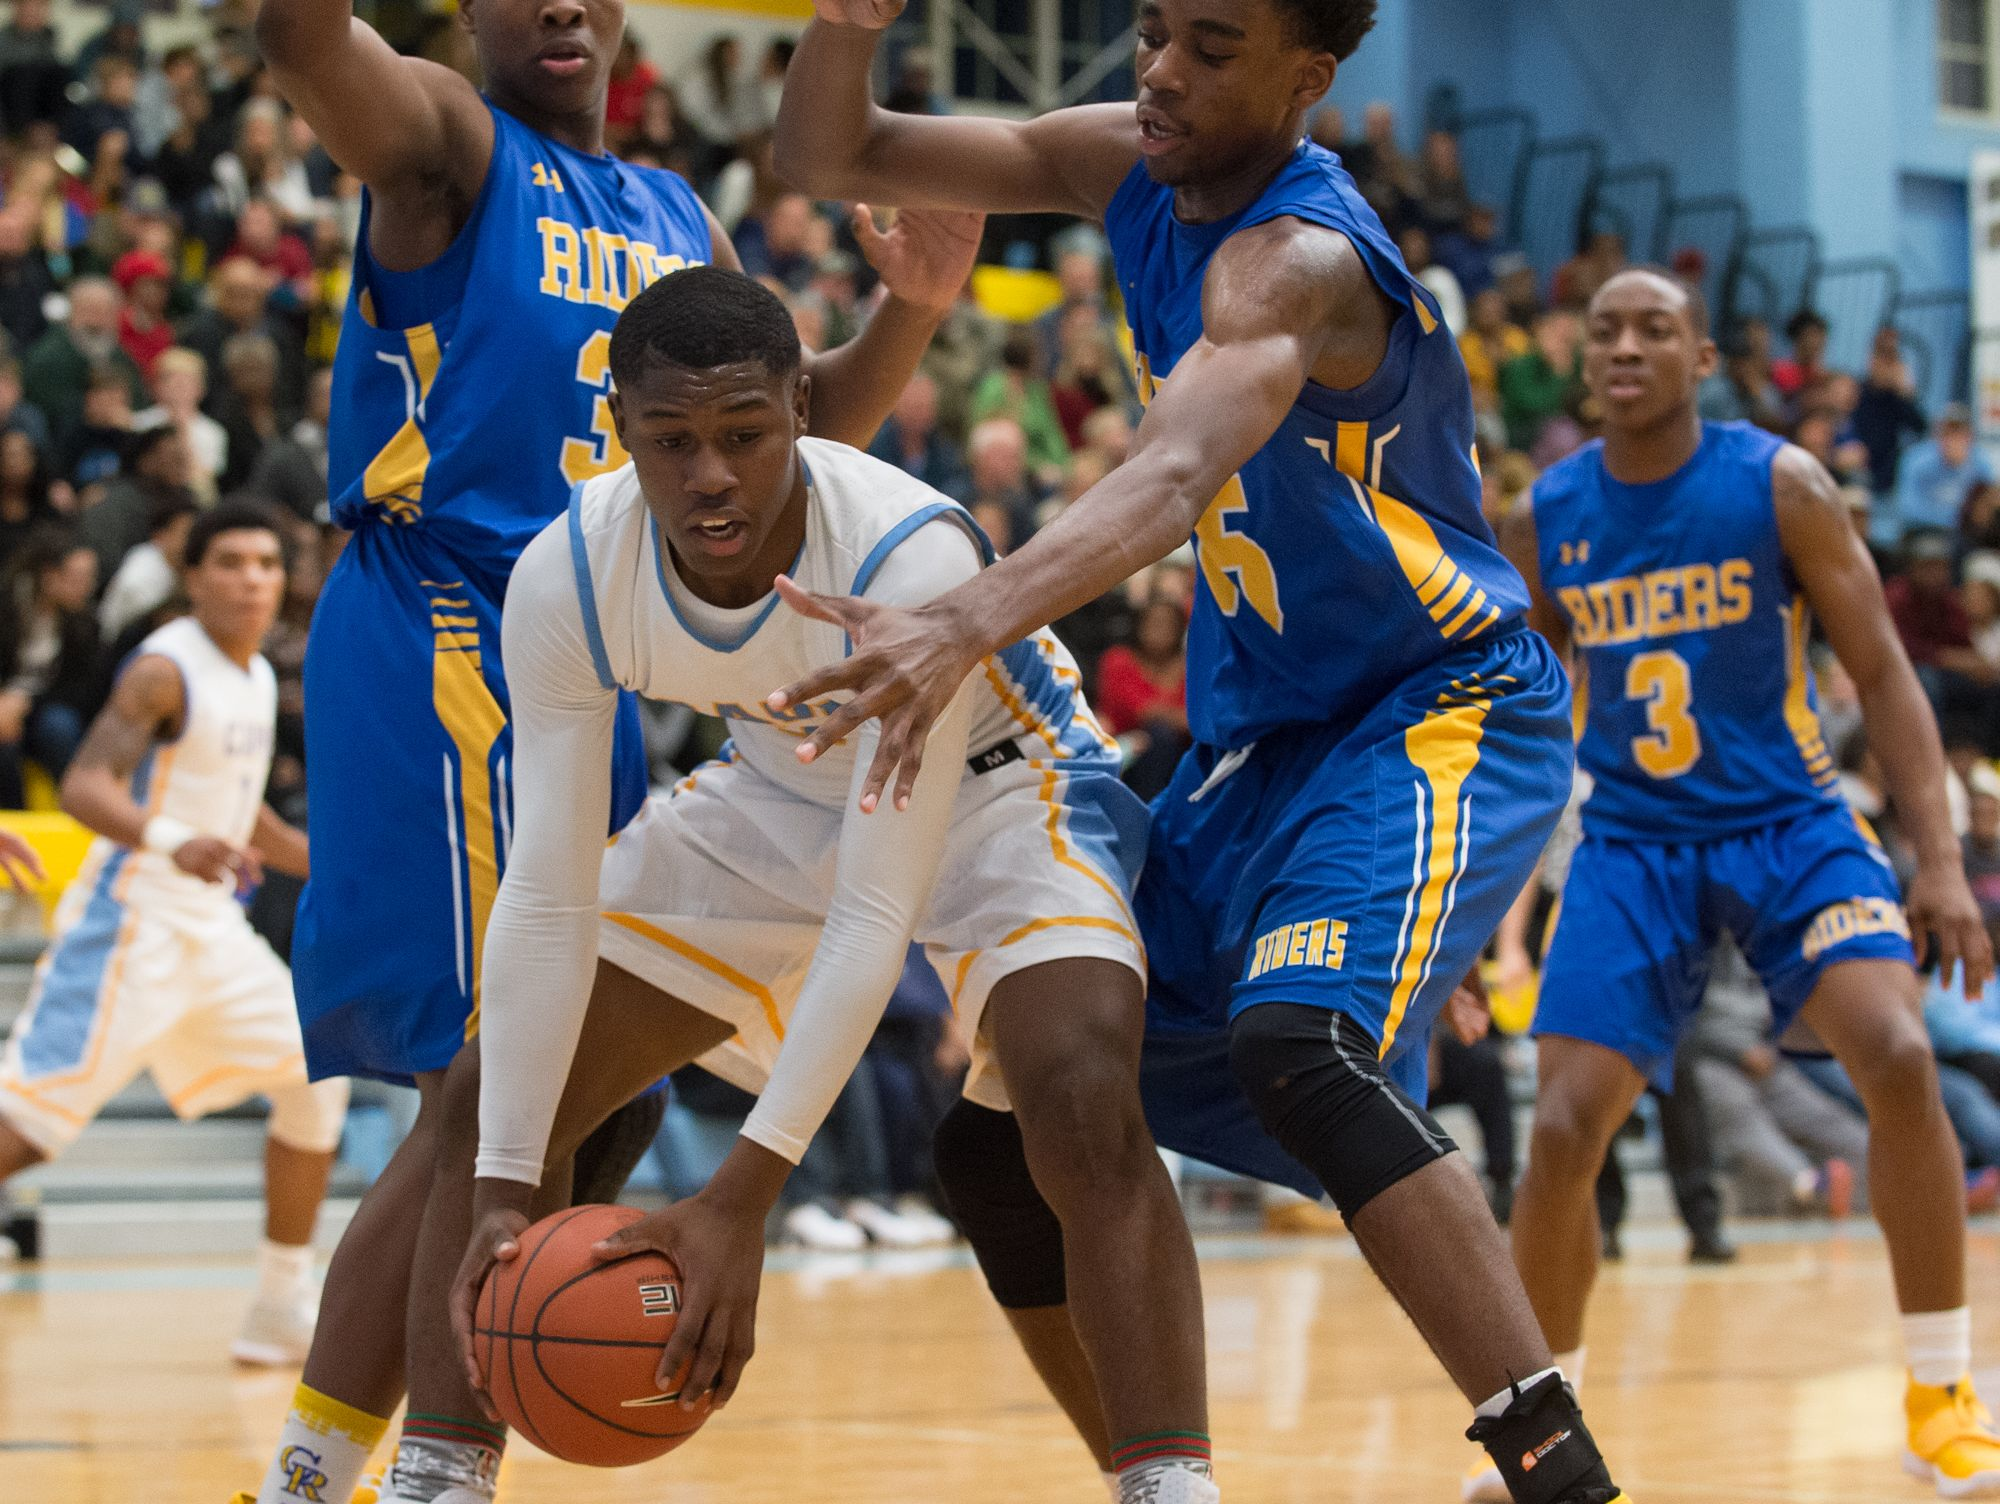 Cape Henlopen's Cory Barnes (2) being defended near the baseline in their home game against Caesar Rodney.